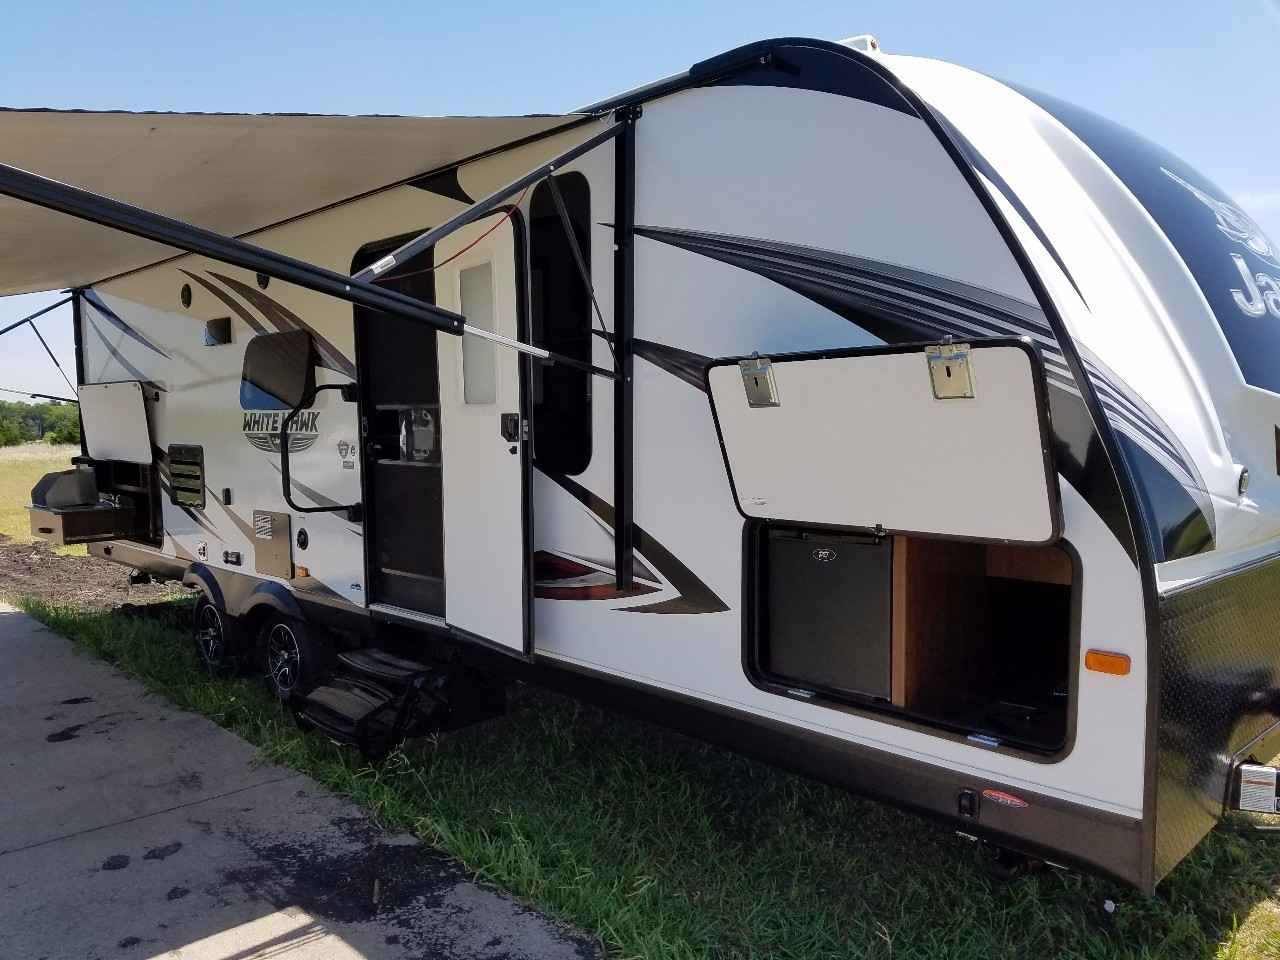 Fantastic He Himself Lived In An RV For Three Months Once They Are More Like A Real Home, Hymer Said Popular Models At His Business Are Manufactured By The Jayco Co Most Of Them Are Fifthwheel Trailers, Which Are Towed By Another Vehicle